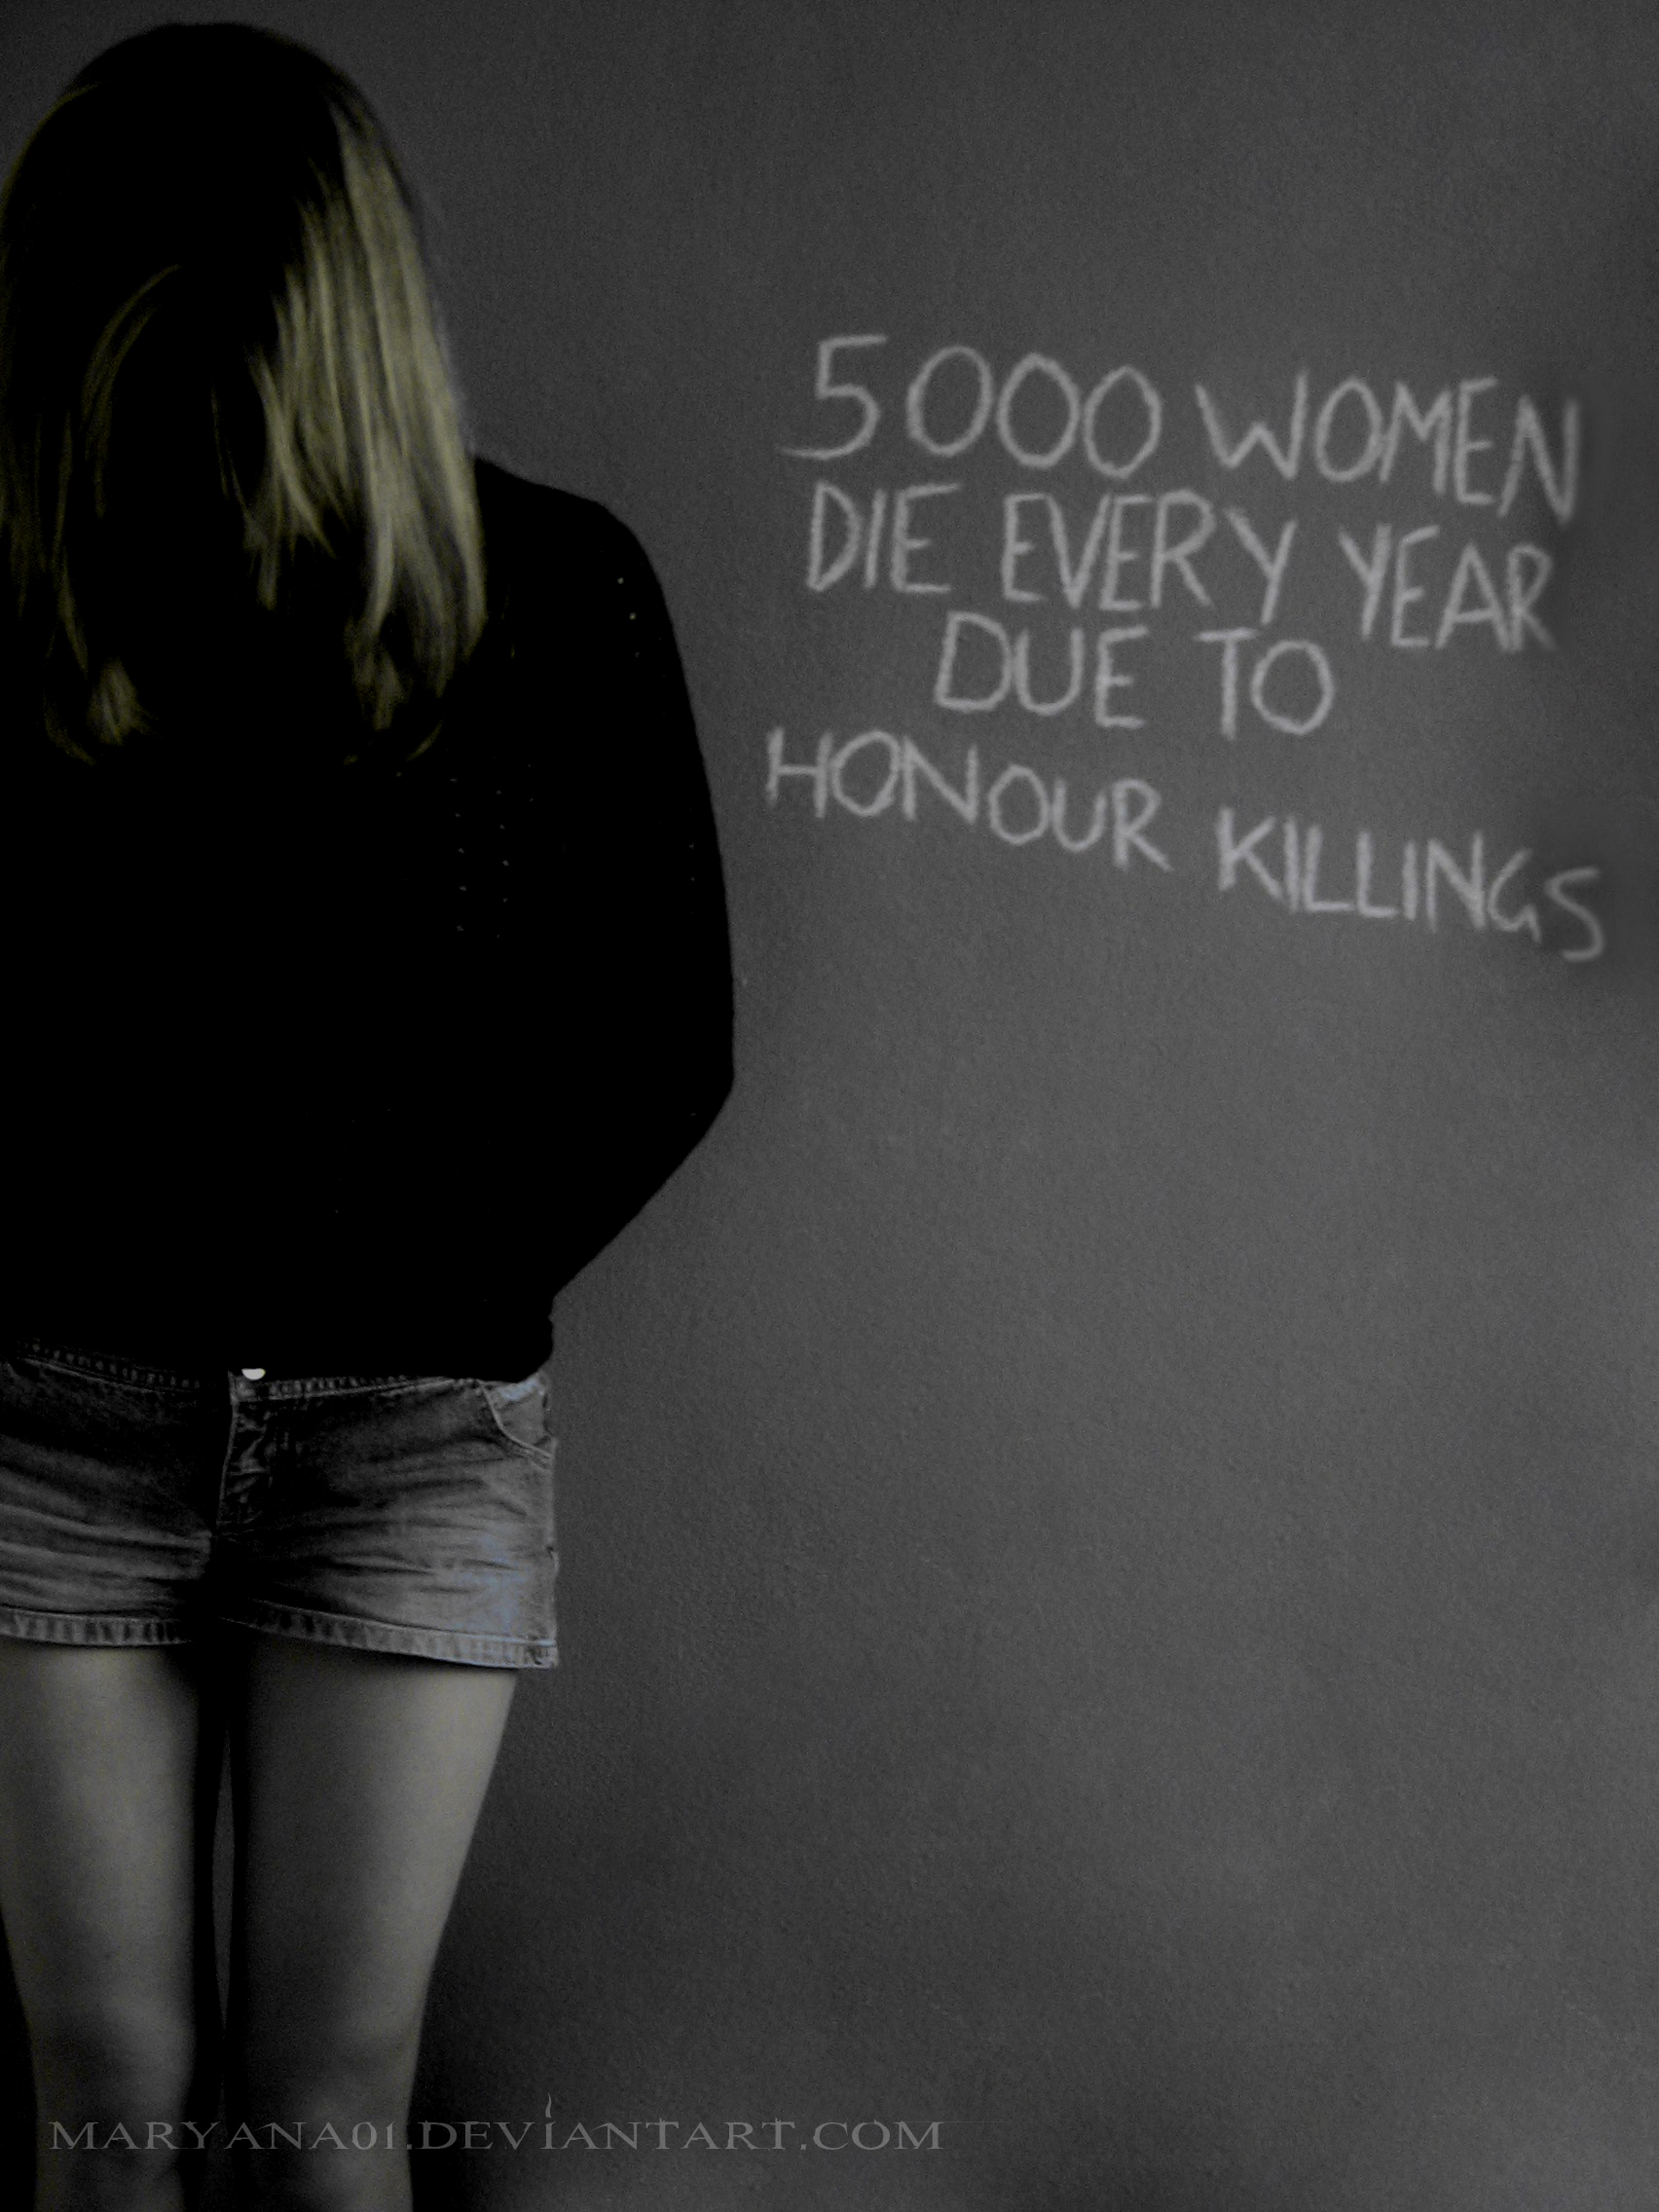 honour killings Honor killing definition is - the traditional practice in some countries of killing a family member who is believed to have brought shame on the family.